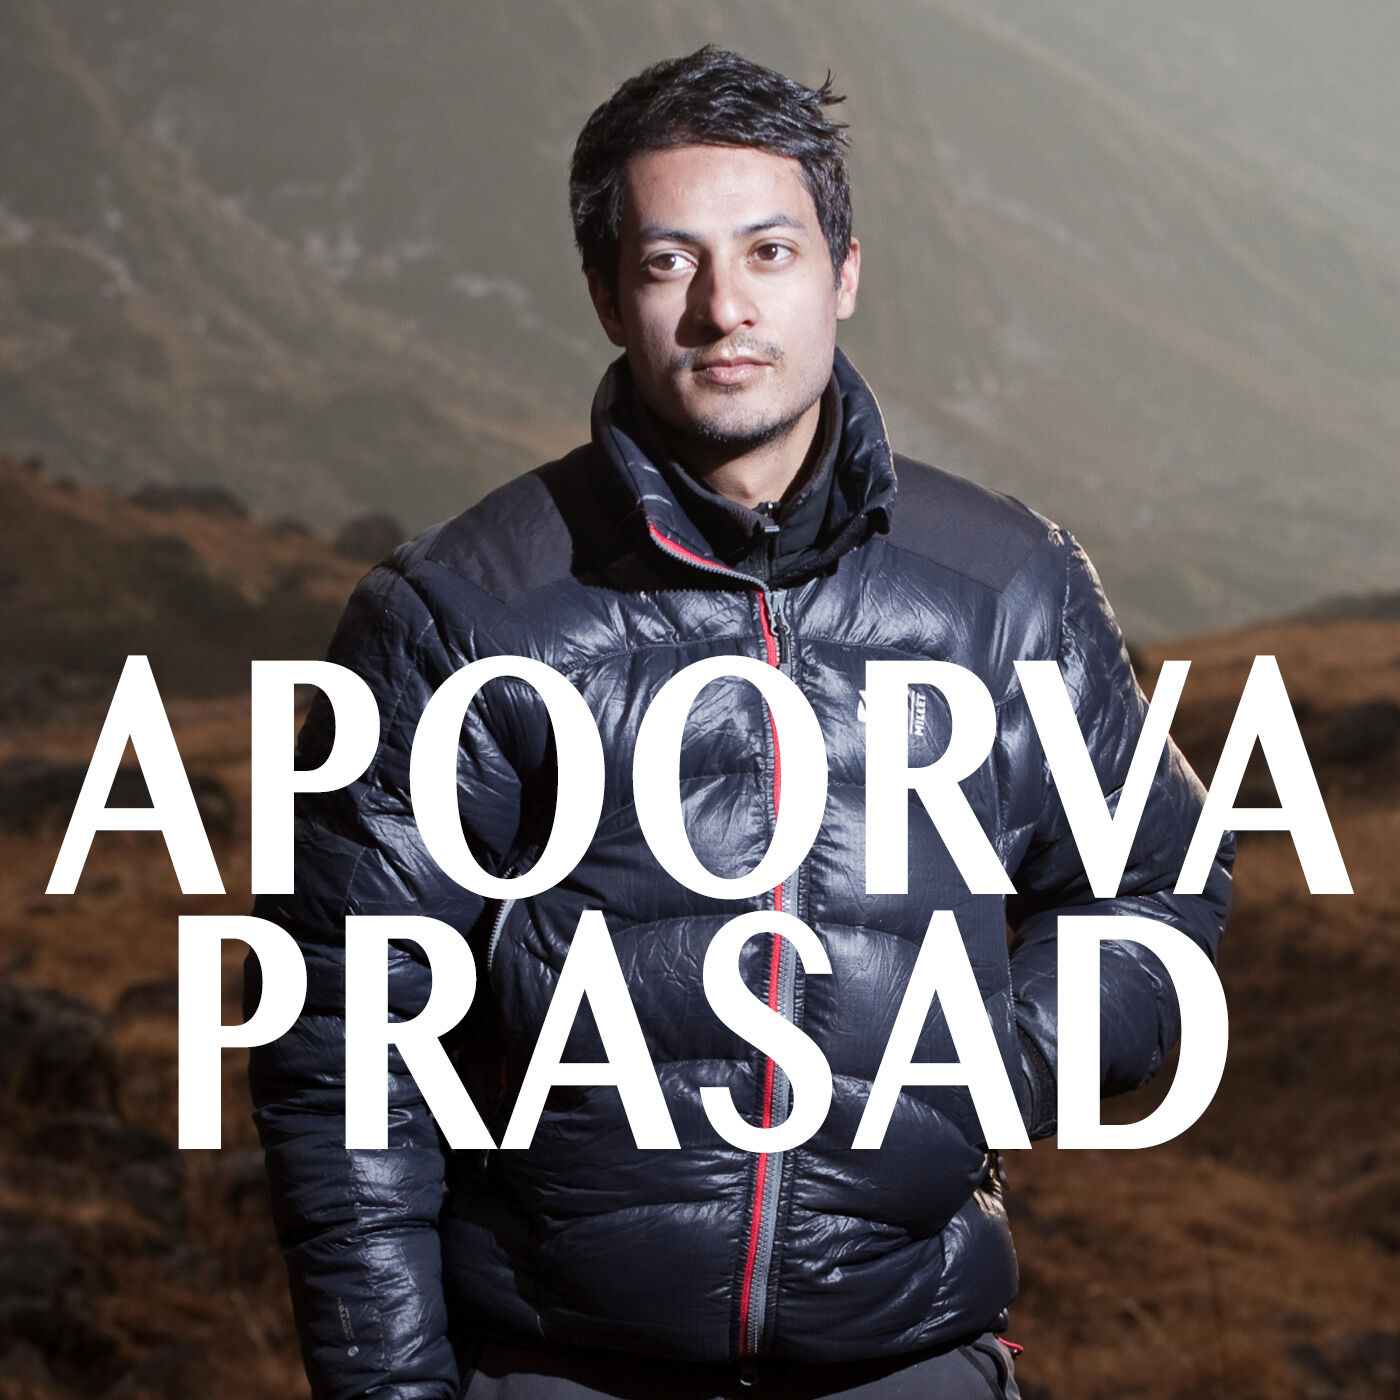 Introducing the Podcast with Apoorva Prasad